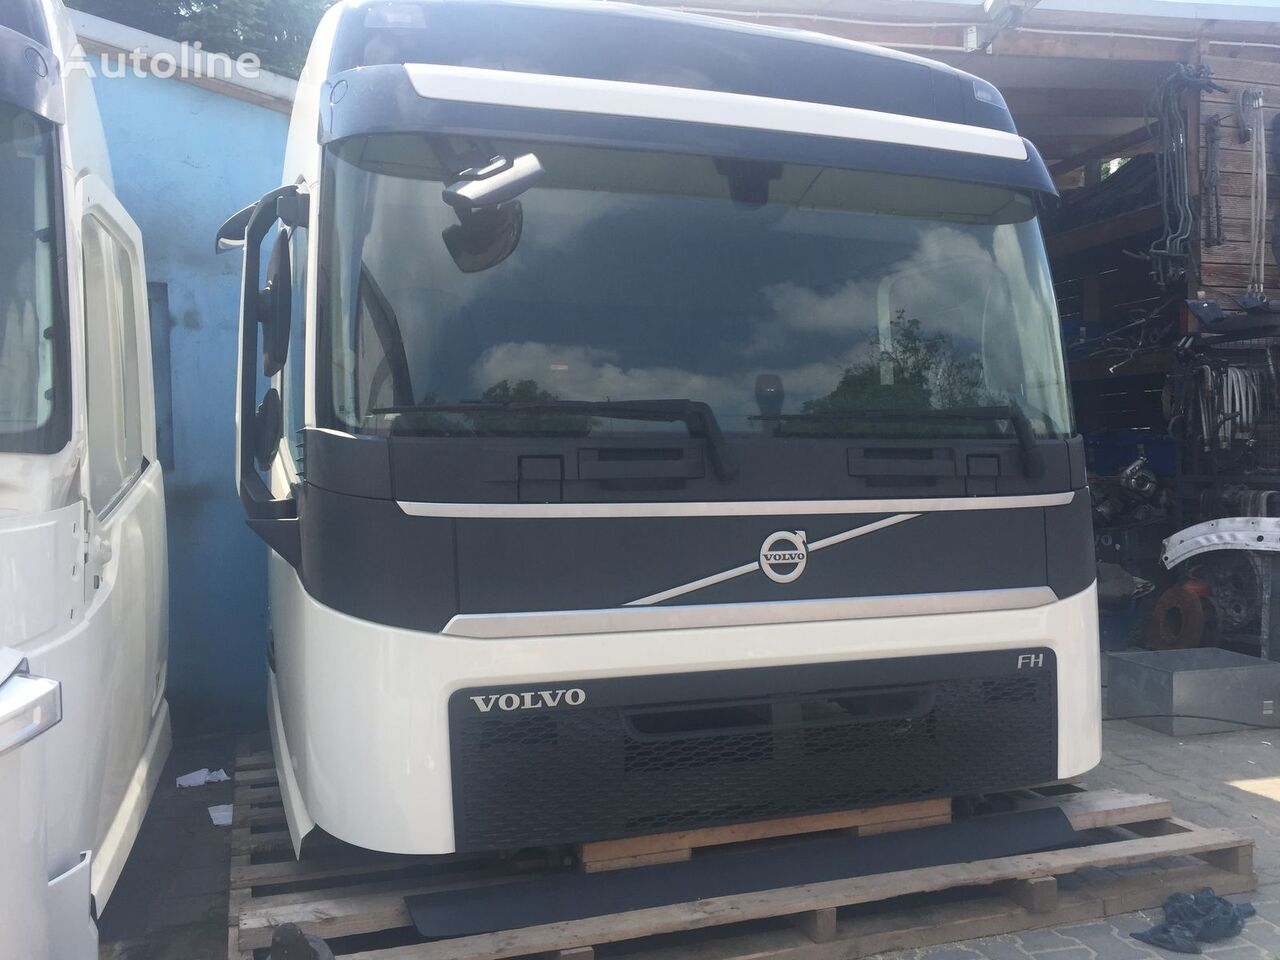 W Ultra VOLVO cabins for VOLVO FH 4 euro6 truck for sale from Poland, buy FX79